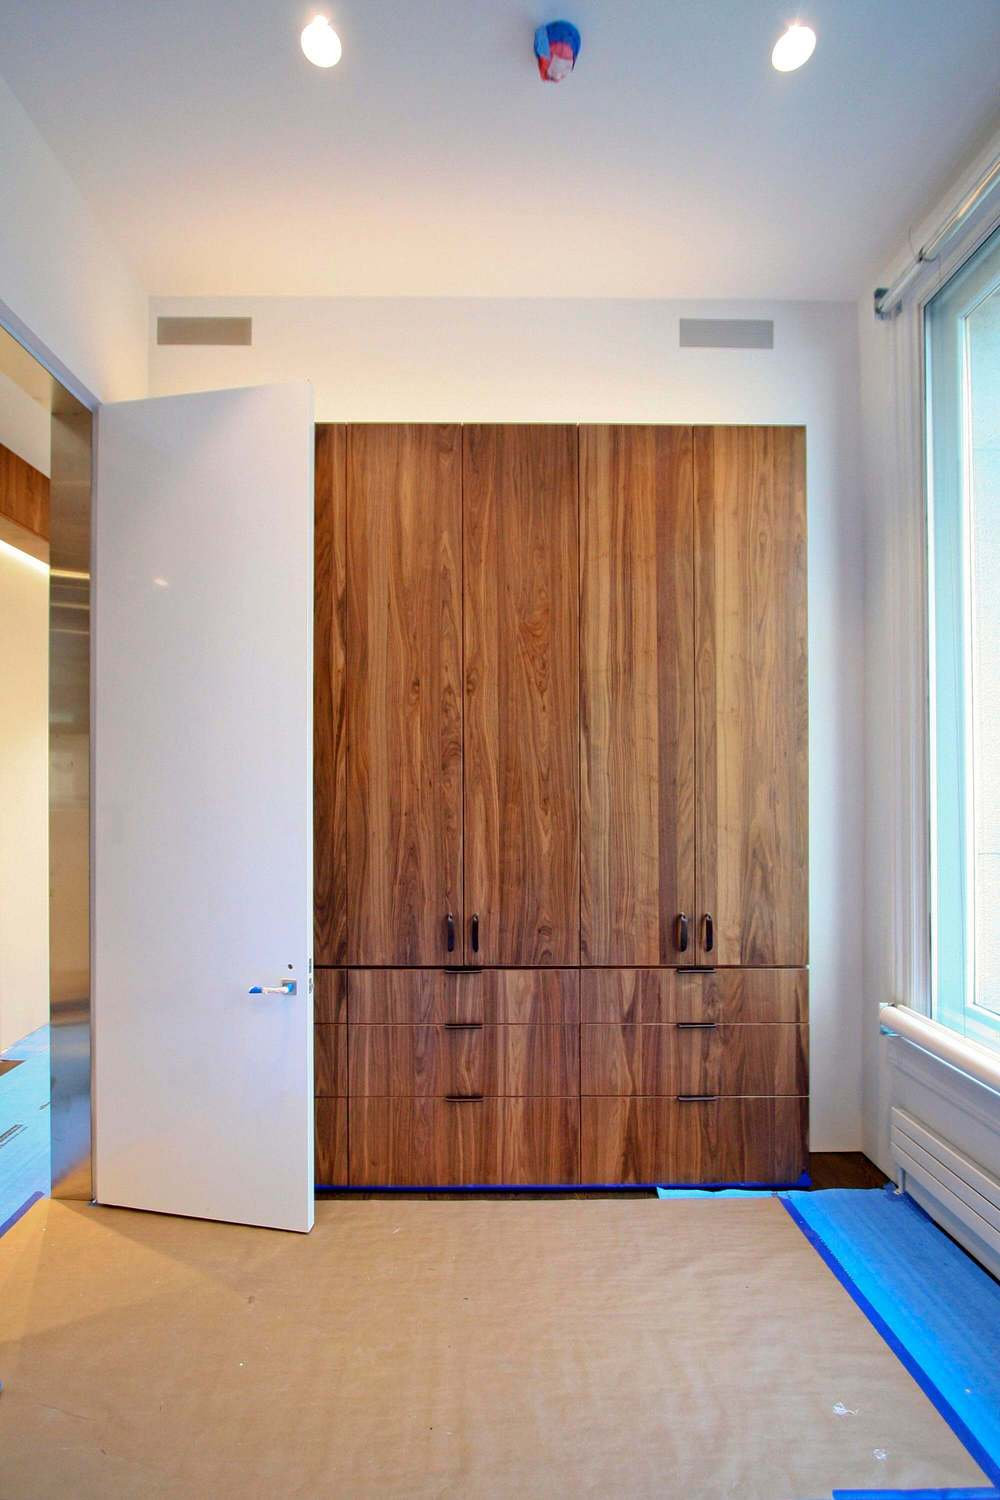 Guest Bedroom  - Built-in Walnut wardrobe and nearly 11-foot tall high-gloss white lacquer door with stainless steel door frame.